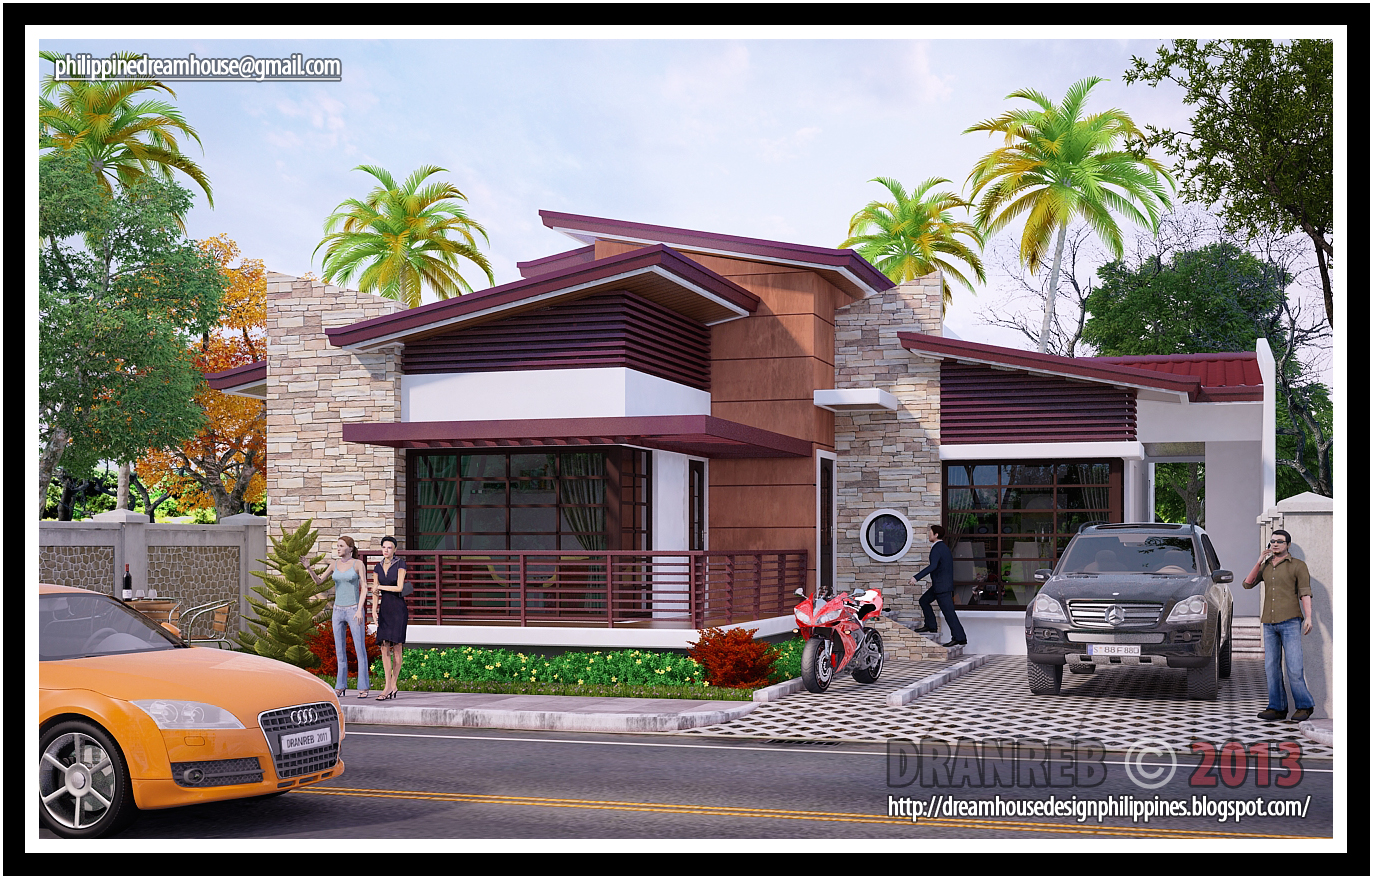 Extraordinary Single Family Home furthermore Dreamhousedesignphilippines blogspot as well Big 3d House Floor Plans besides  also Kerala Model Small House Plans Photos Varusbattle. on modern single storey house design philippines